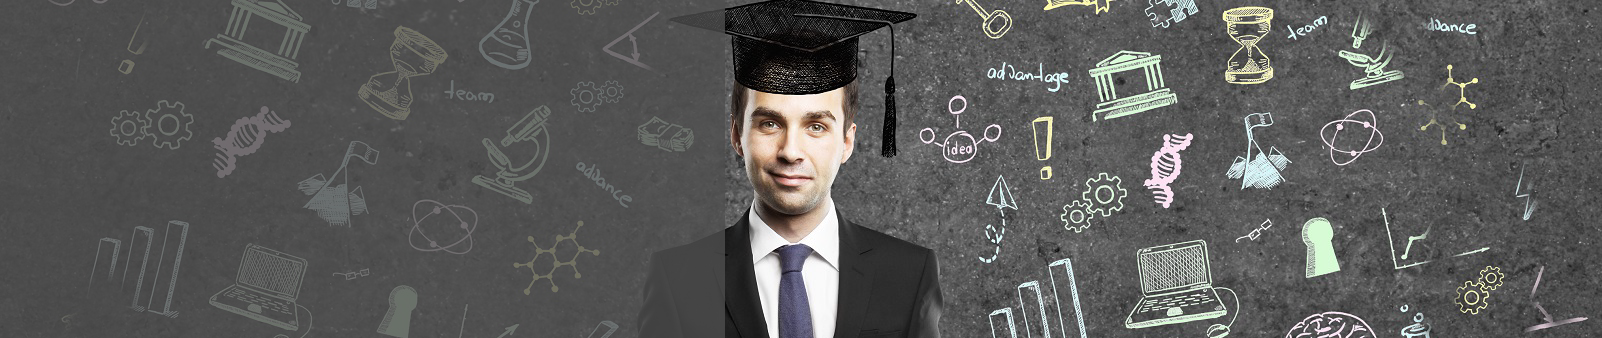 Marketable Skills - graduate with skills drawn on chalkboard